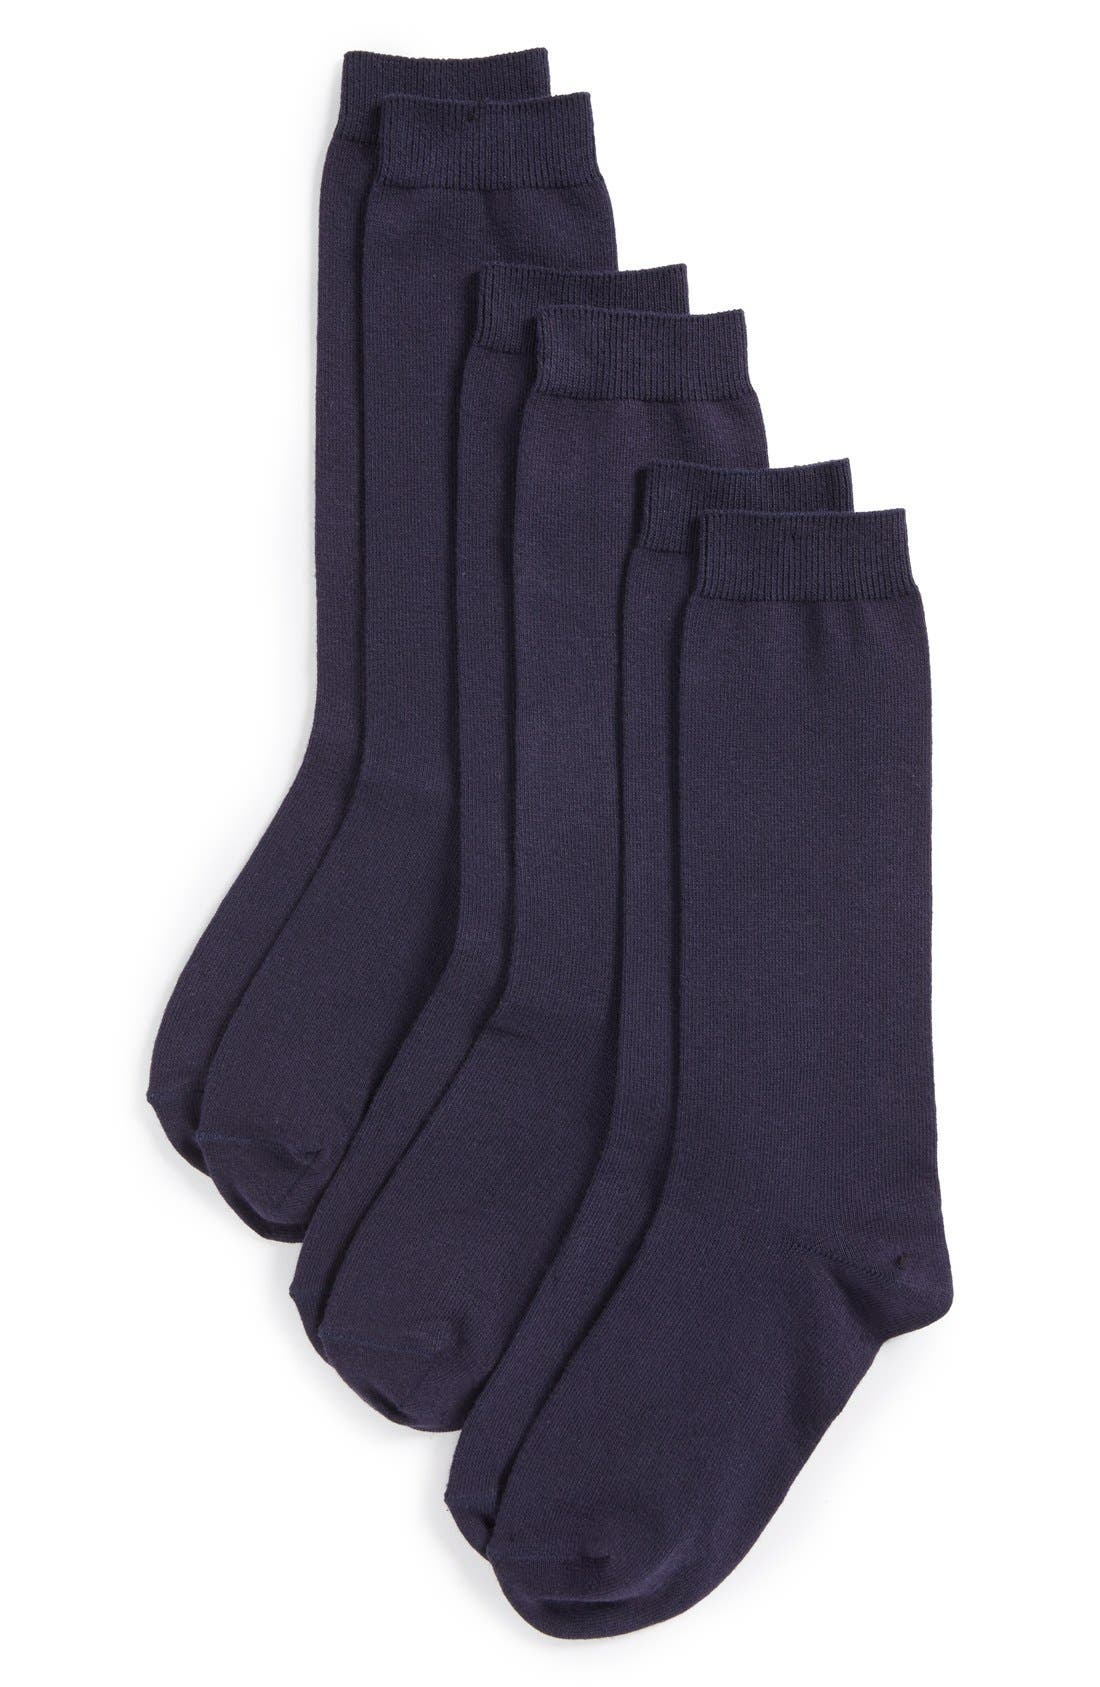 Nordstrom 3-Pack Knee High Socks (Little Kid & Big Kid)